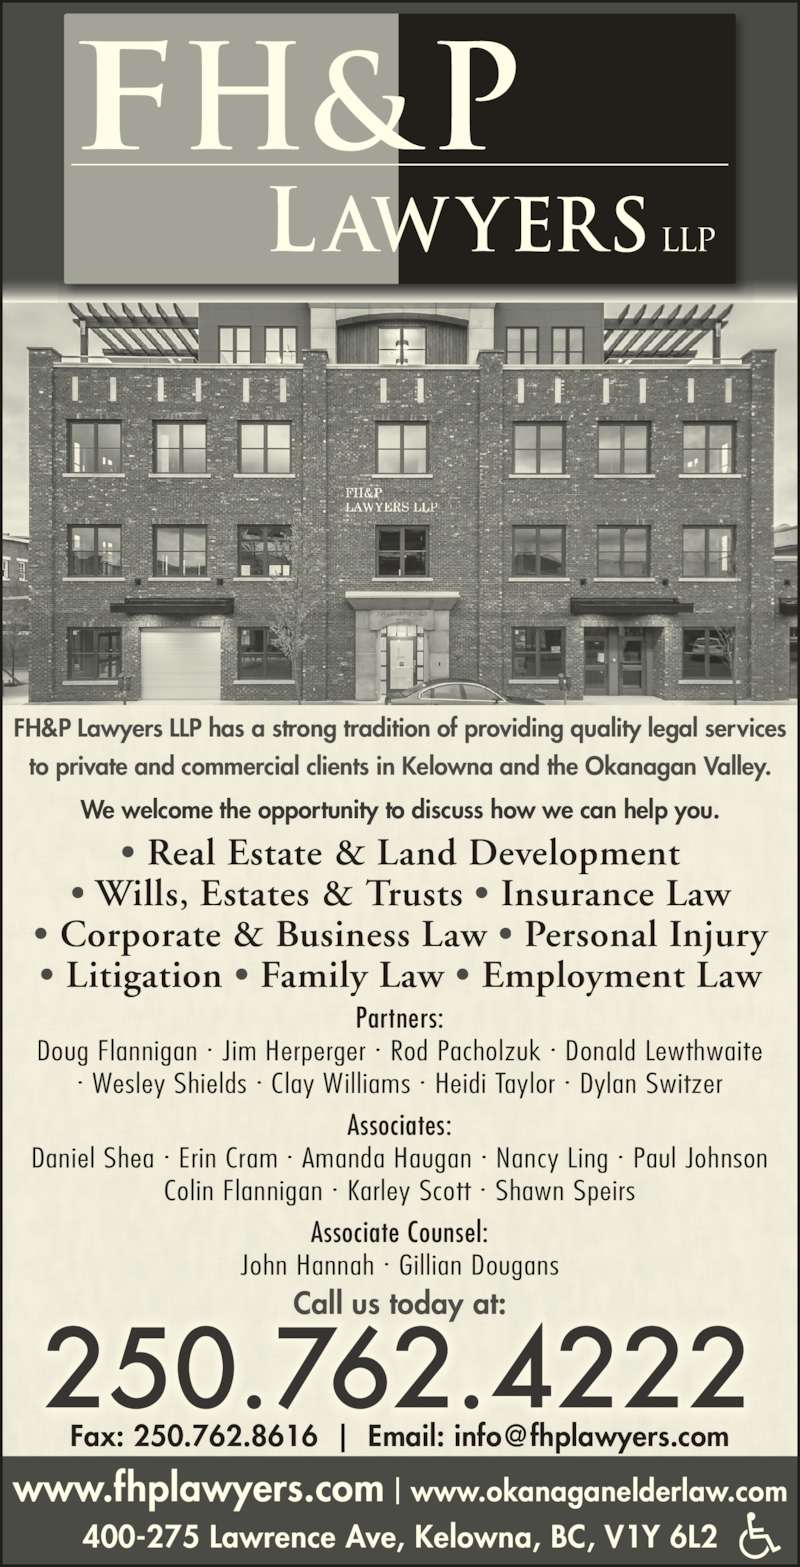 FH&P Lawyers LLP (250-762-4222) - Display Ad - www.fhplawyers.com | www.okanaganelderlaw.com 400-275 Lawrence Ave, Kelowna, BC, V1Y 6L2 250.762.4222 Call us today at: FH&P Lawyers LLP has a strong tradition of providing quality legal services to private and commercial clients in Kelowna and the Okanagan Valley. We welcome the opportunity to discuss how we can help you. Partners: Doug Flannigan ? Jim Herperger ? Rod Pacholzuk ? Donald Lewthwaite ? Wesley Shields ? Clay Williams ? Heidi Taylor ? Dylan Switzer Associates: Daniel Shea ? Erin Cram ? Amanda Haugan ? Nancy Ling ? Paul Johnson Colin Flannigan ? Karley Scott ? Shawn Speirs Associate Counsel: John Hannah ? Gillian Dougans ? Real Estate & Land Development ? Wills, Estates & Trusts ? Insurance Law ? Corporate & Business Law ? Personal Injury ? Litigation ? Family Law ? Employment Law